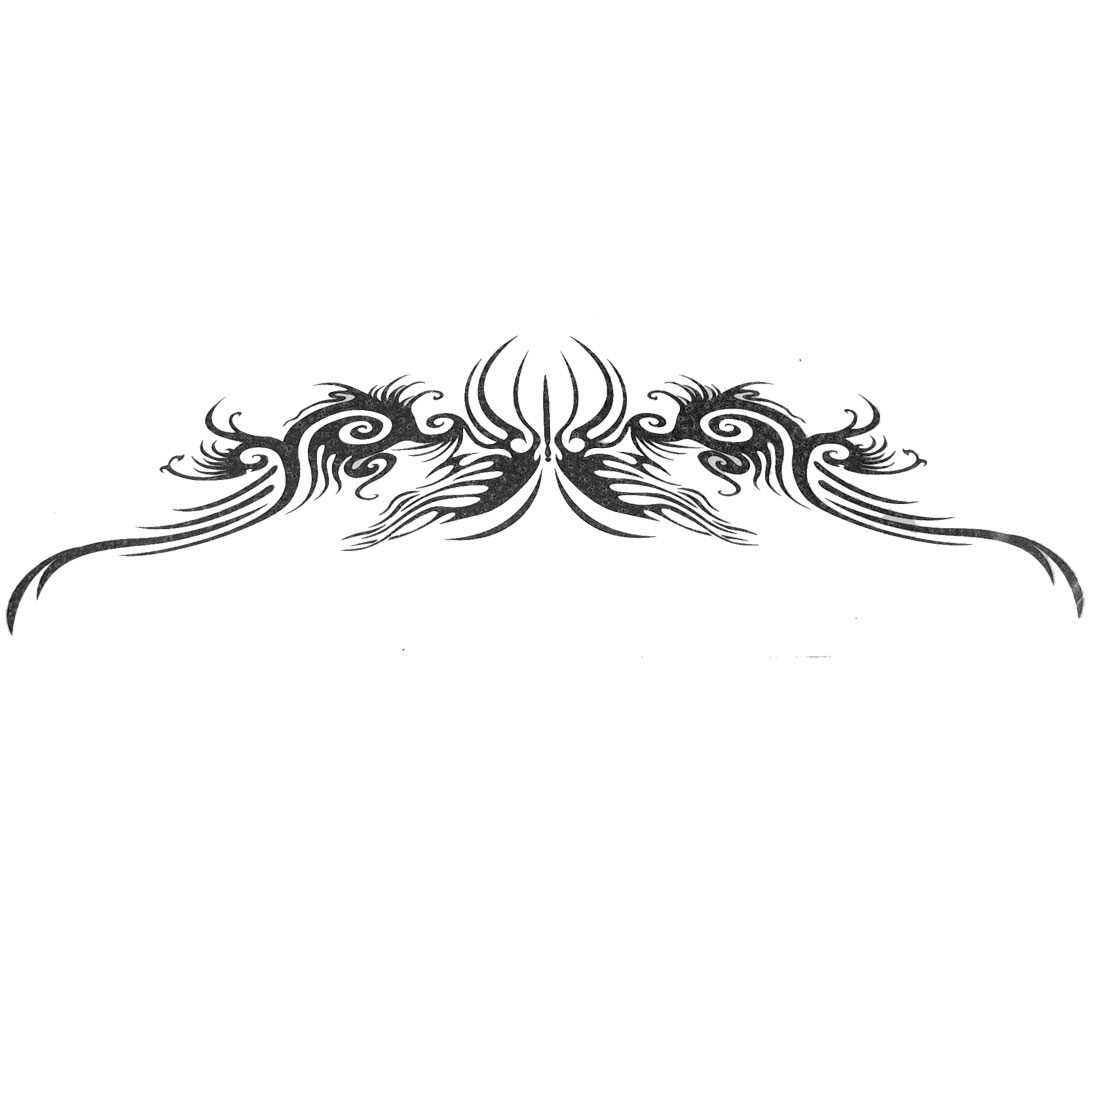 Metal Ceramic Butterfly Print Temporary Transfer Tattoos Sticker Beauty Tool